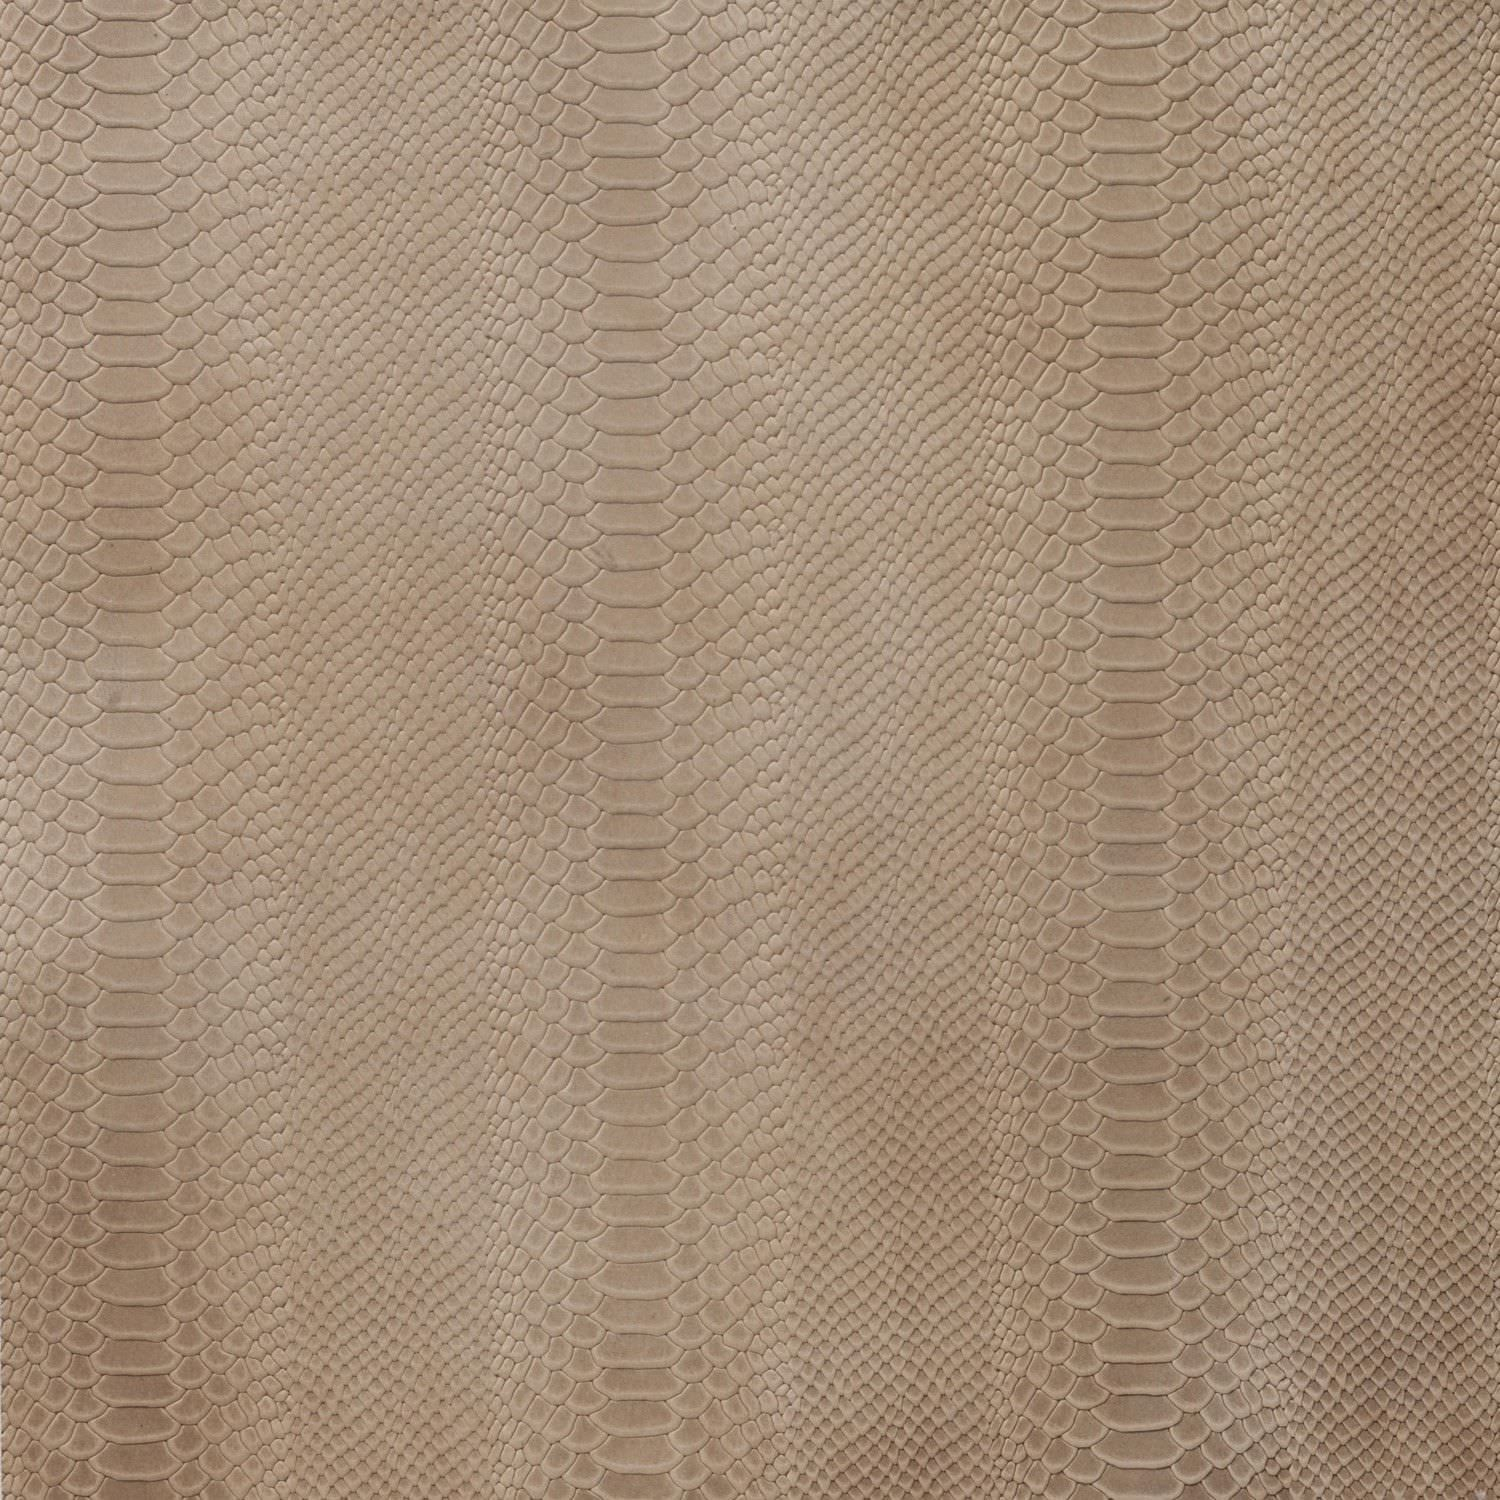 Indoor flexible tile floor leather textured cobra discover all the information about the product indoor flexible tile floor leather textured cobra alphenberg and find where you can buy it dailygadgetfo Gallery